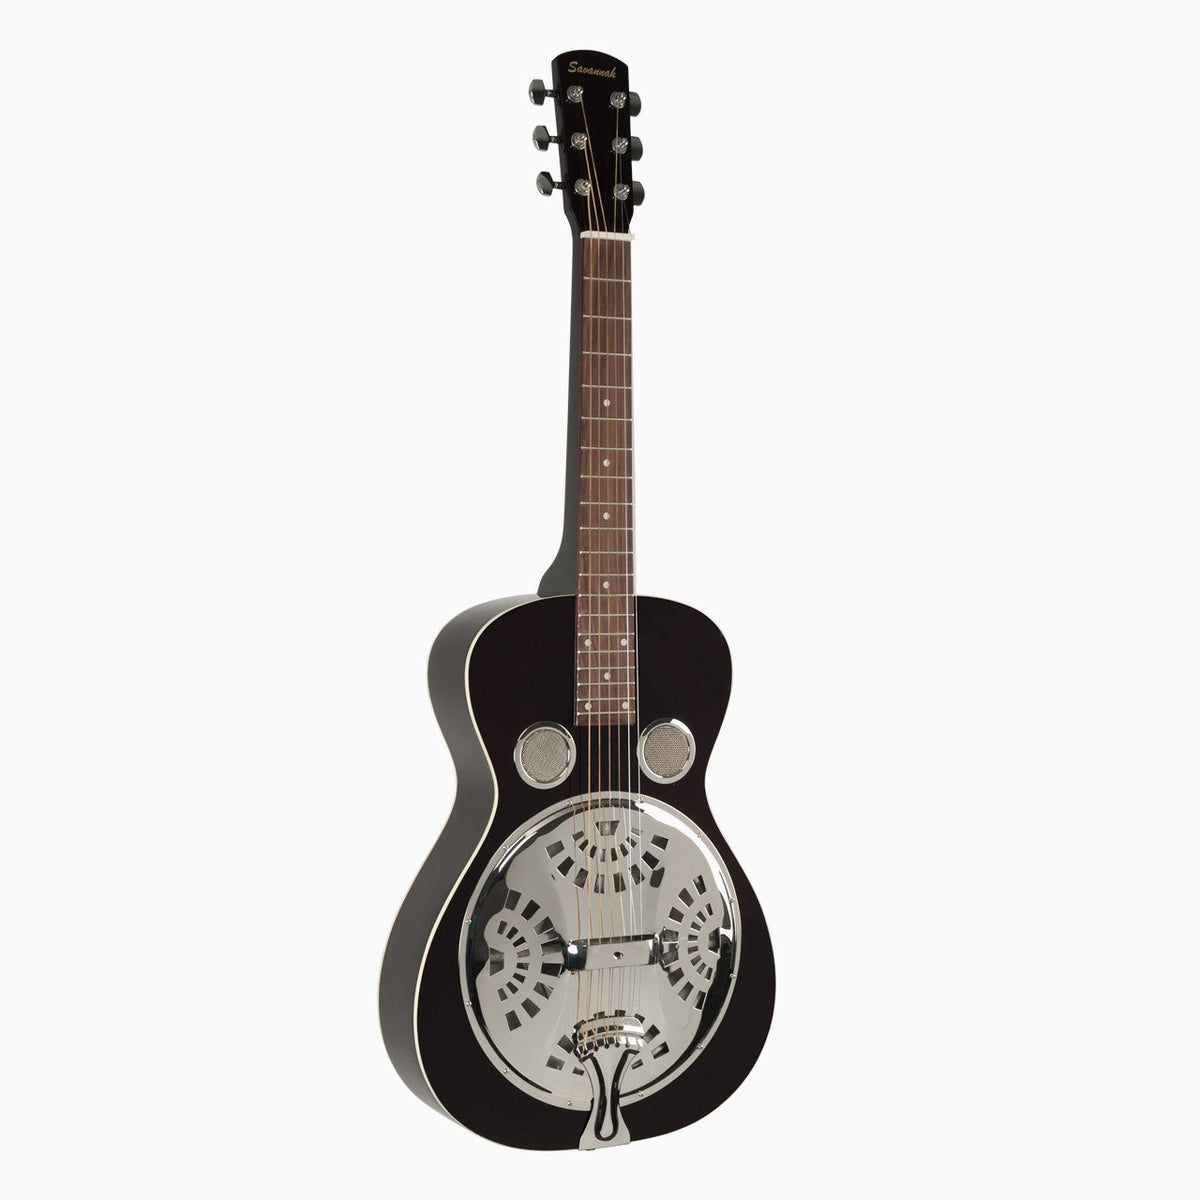 Savannah Squareneck Resonator